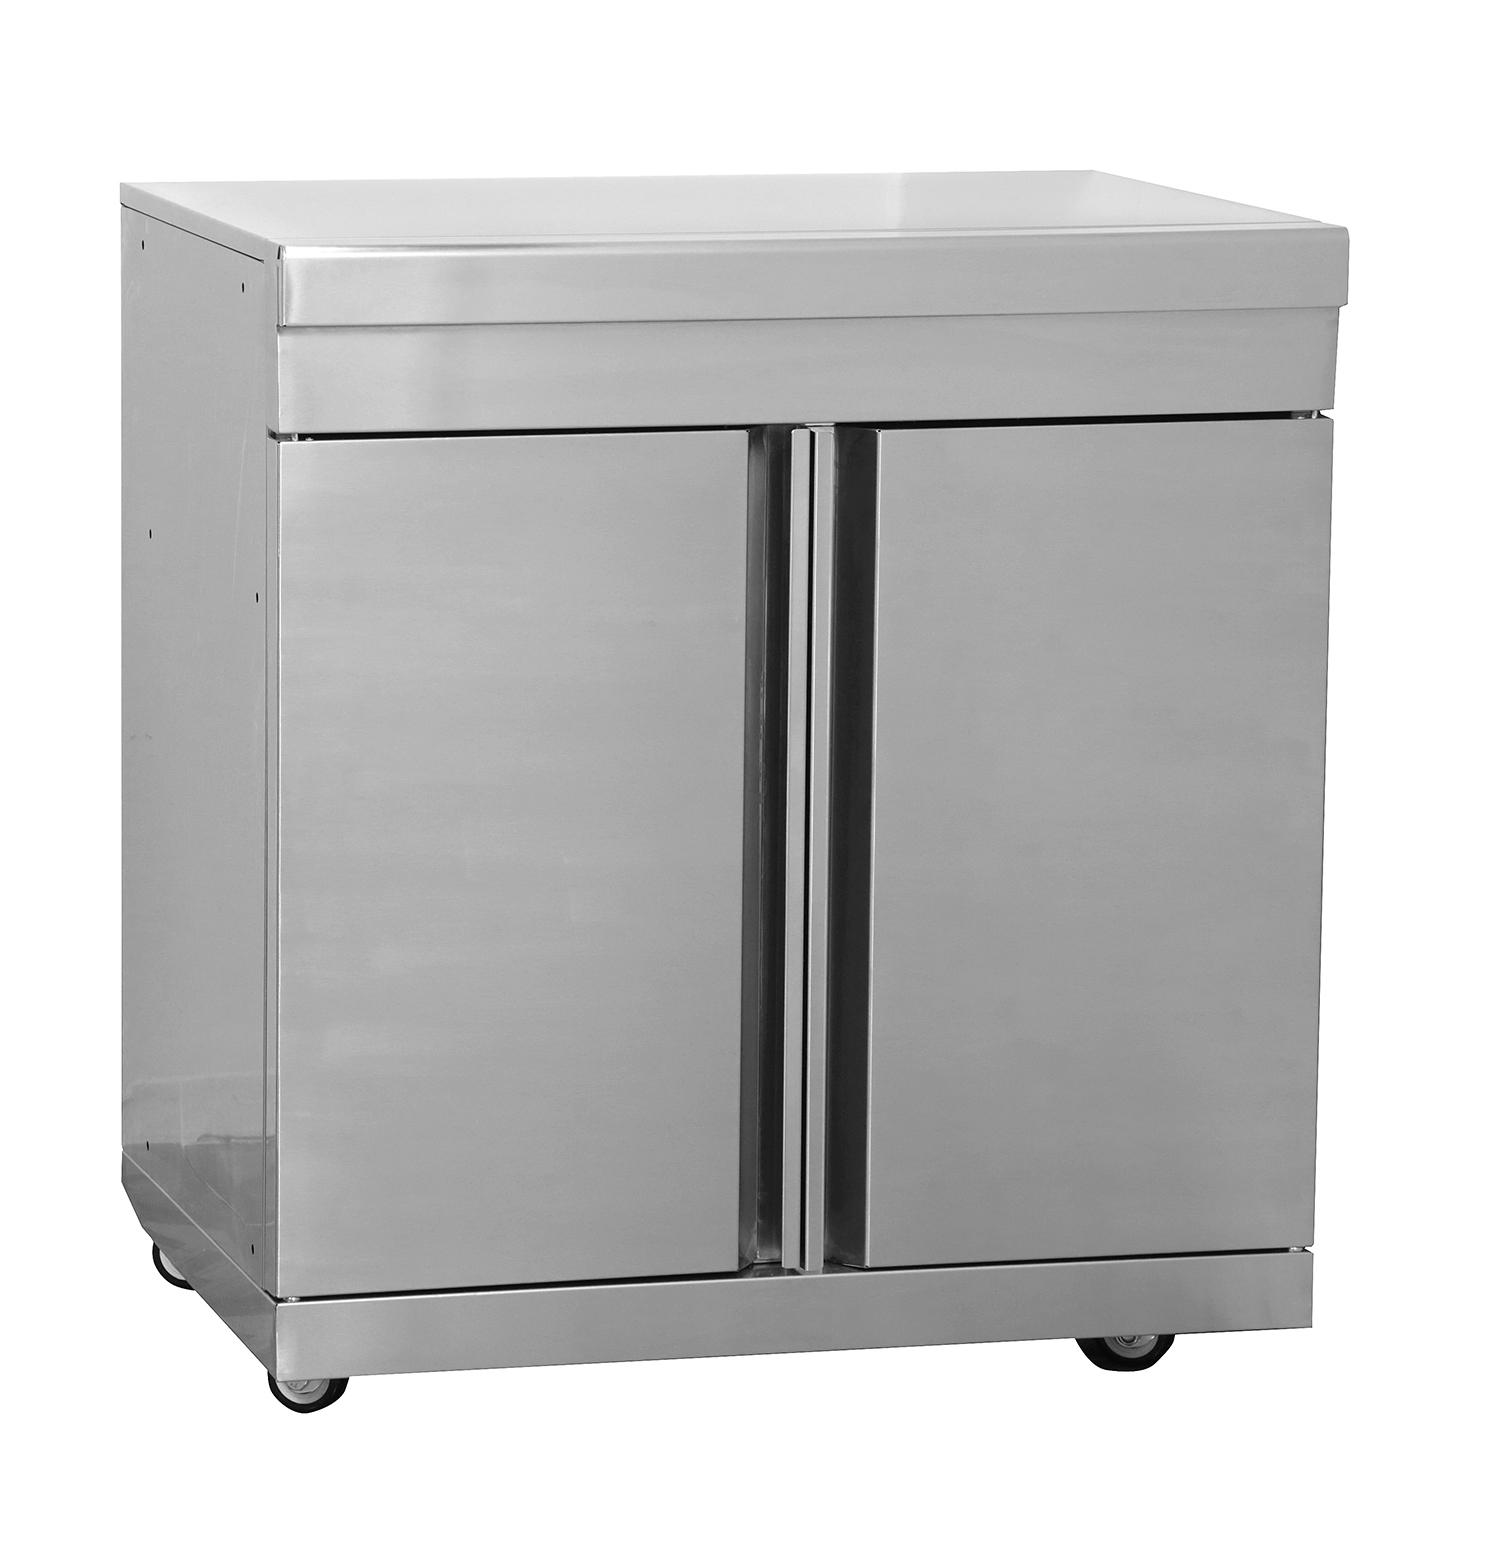 Amazon Swiss Grill Mscabinet Cabinet Module Extra Storage Space For Your Modular